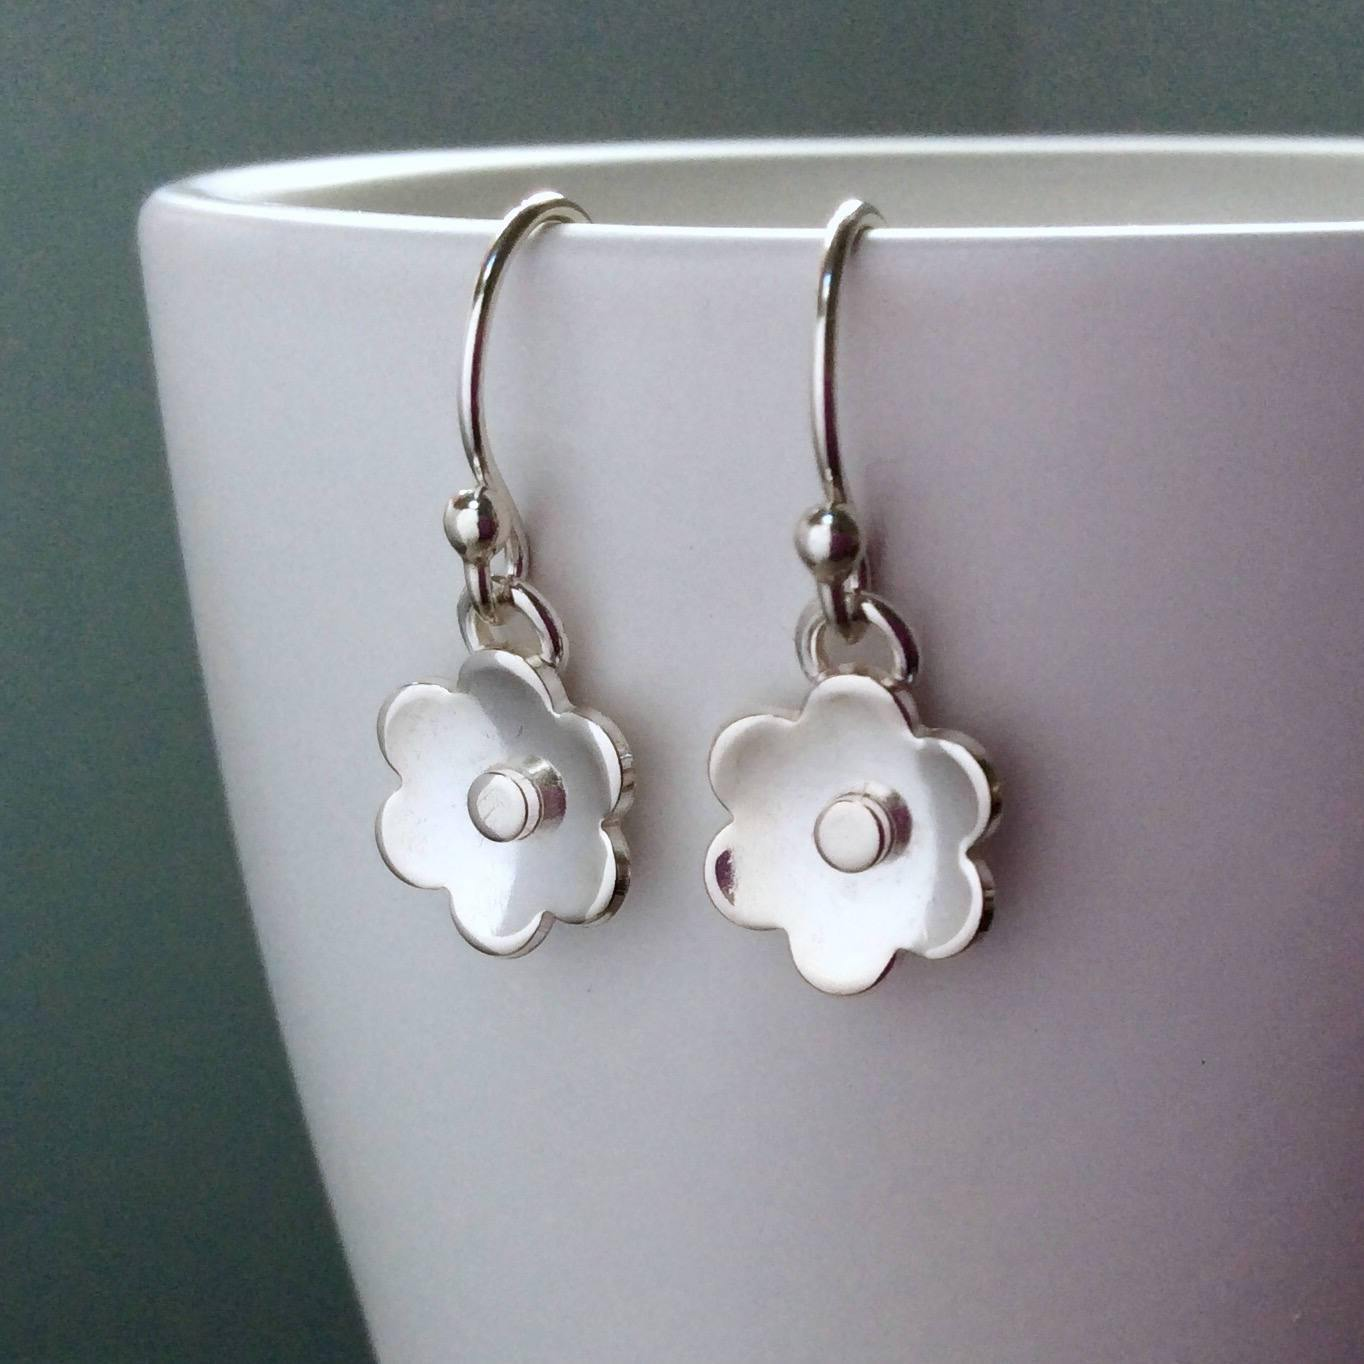 Earrings with sterling silver flower design, dainty and simple with silver centre